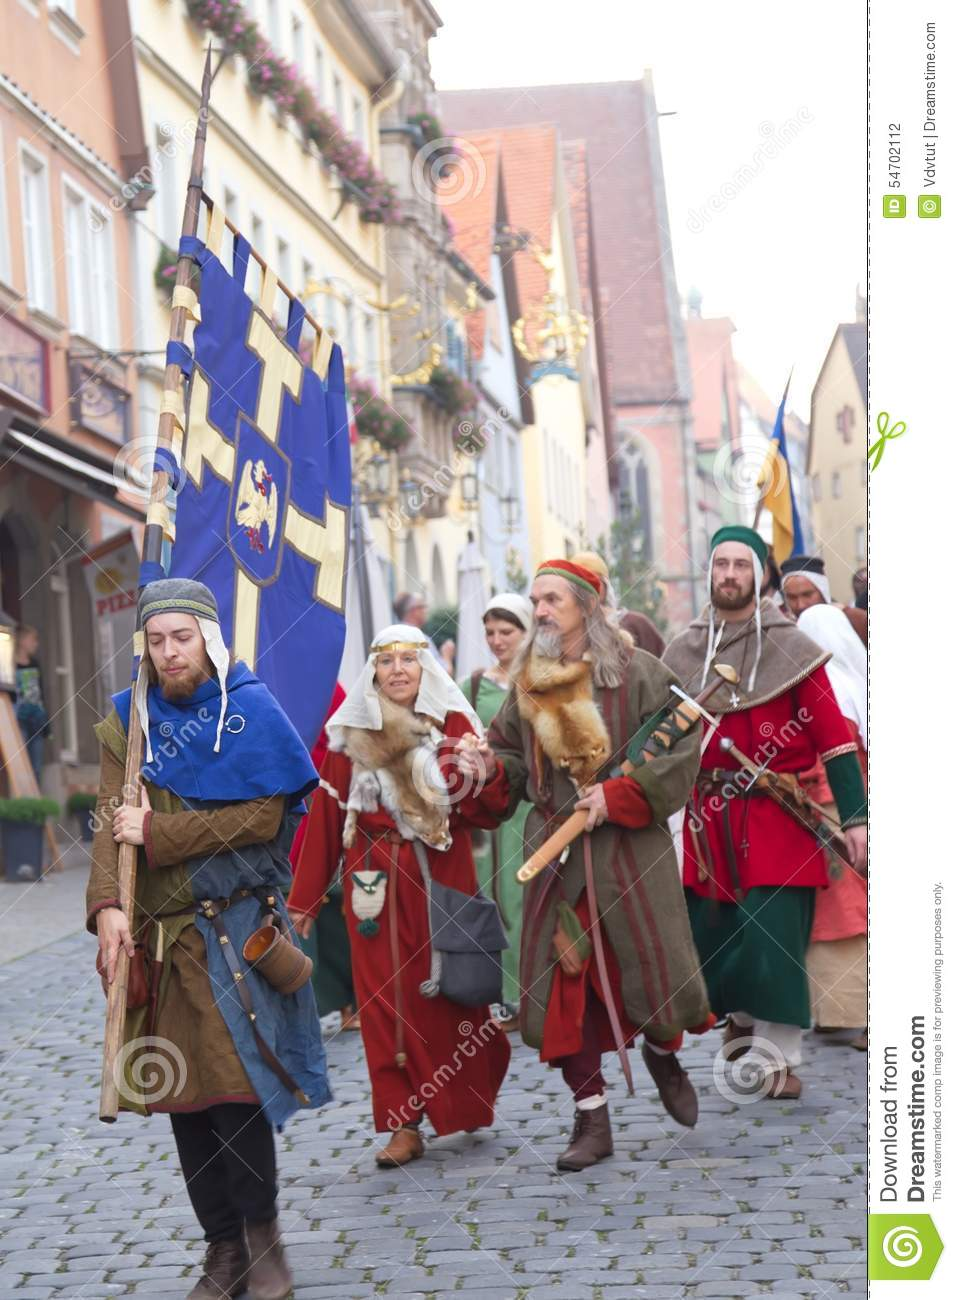 ROTHENBURG OB DER TAUBER, GERMANY - September 5: Performers of t